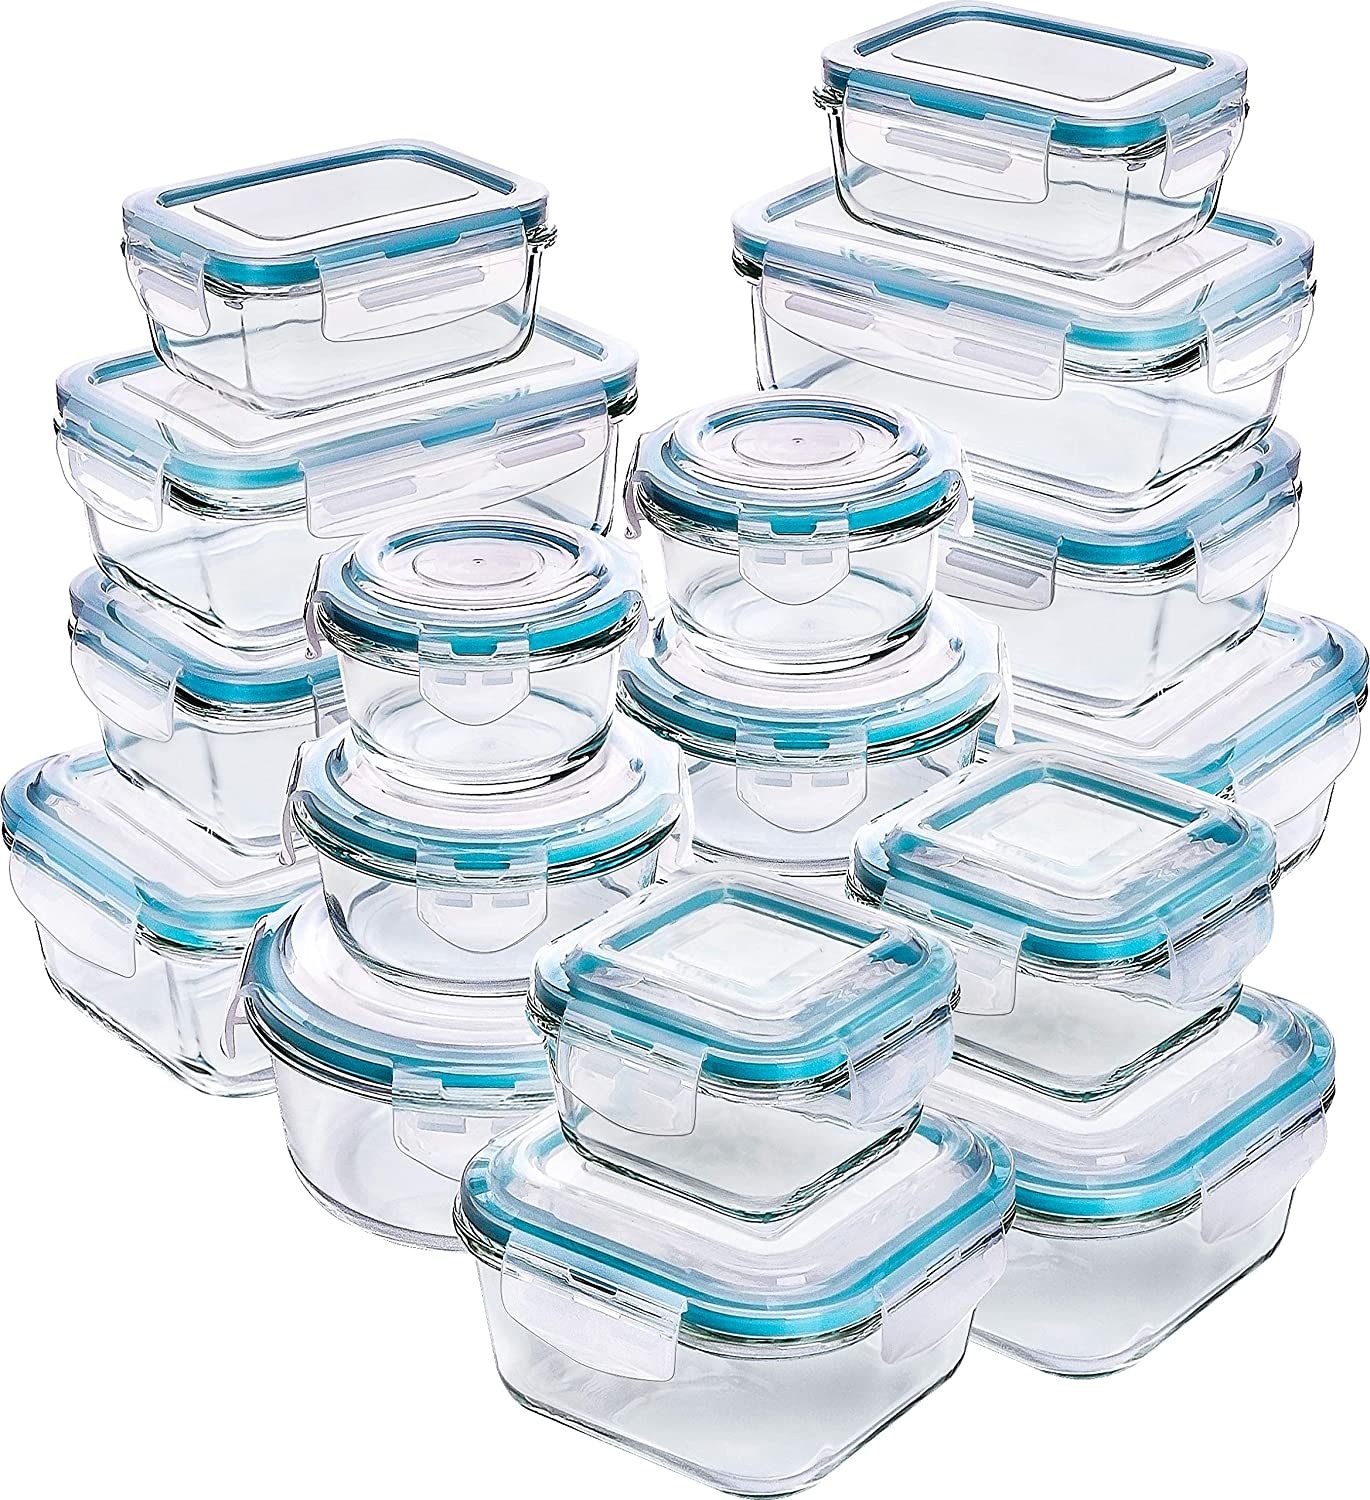 Glass Food Storage Container Set with Lids